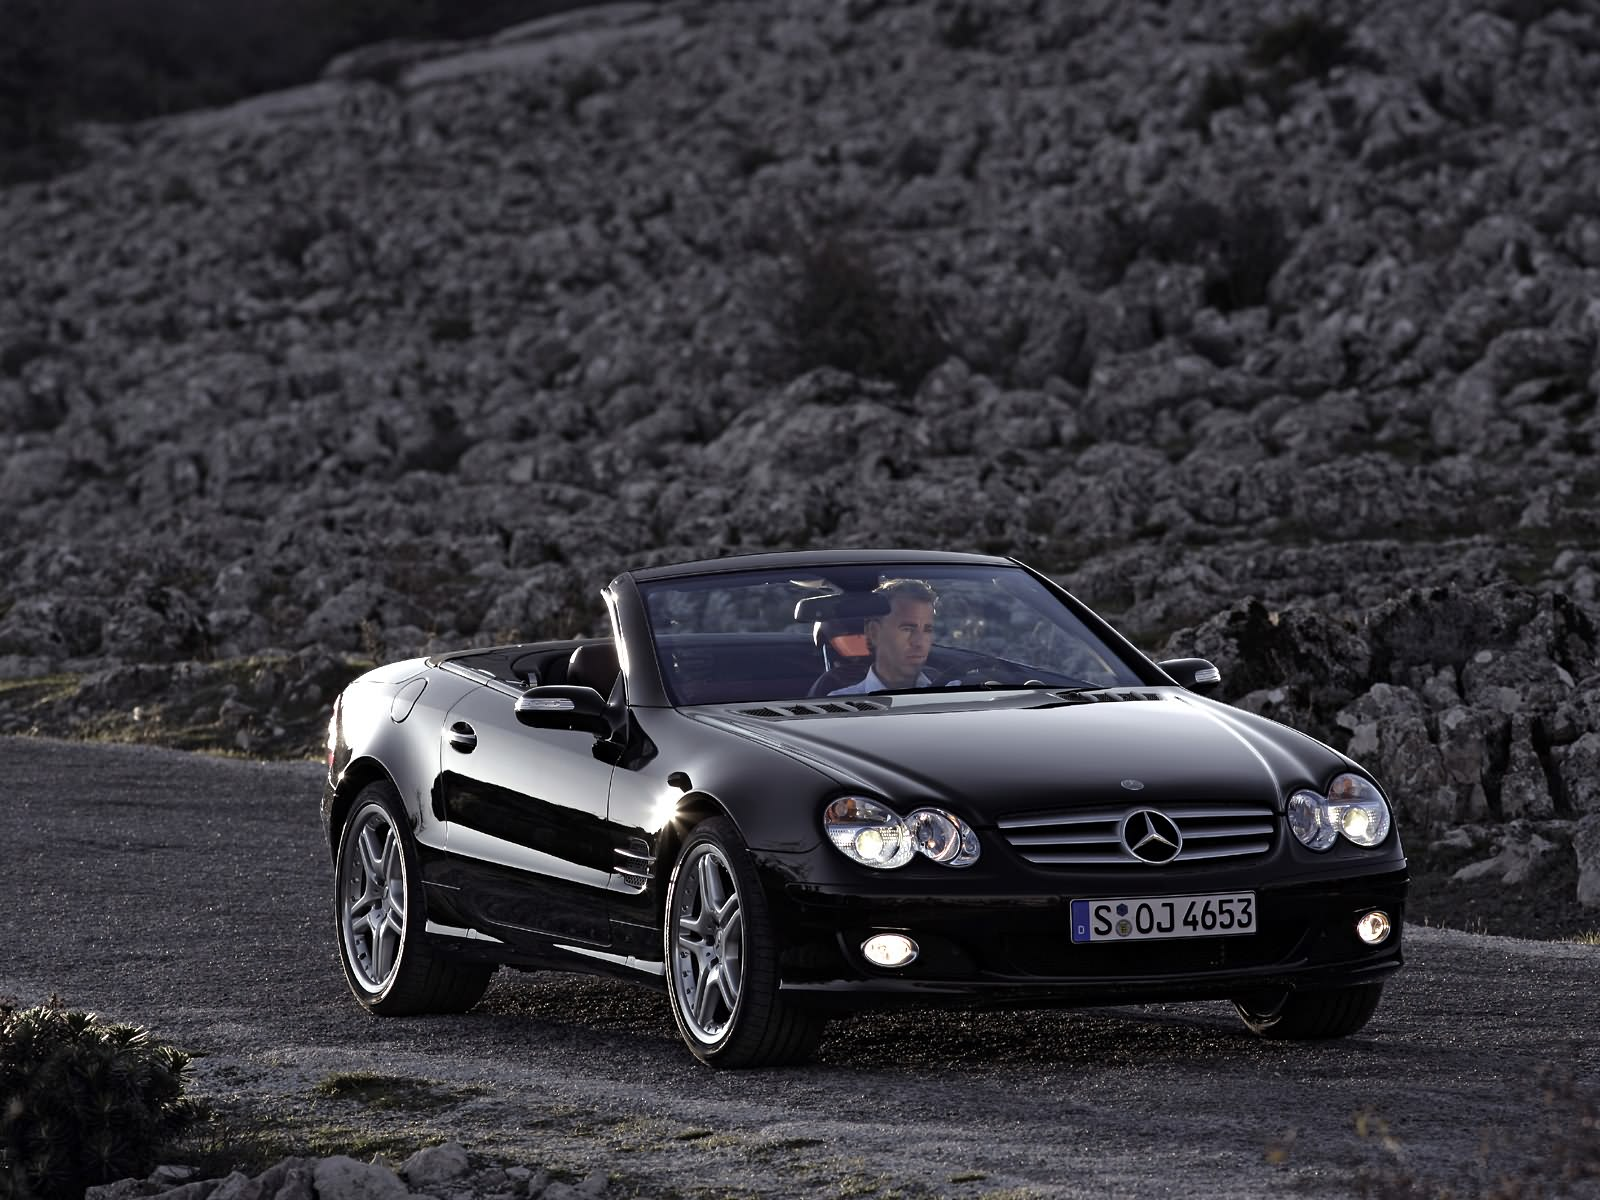 mercedes benz sl350 picture 4 of 22 my 2006 size 1600x1200. Black Bedroom Furniture Sets. Home Design Ideas